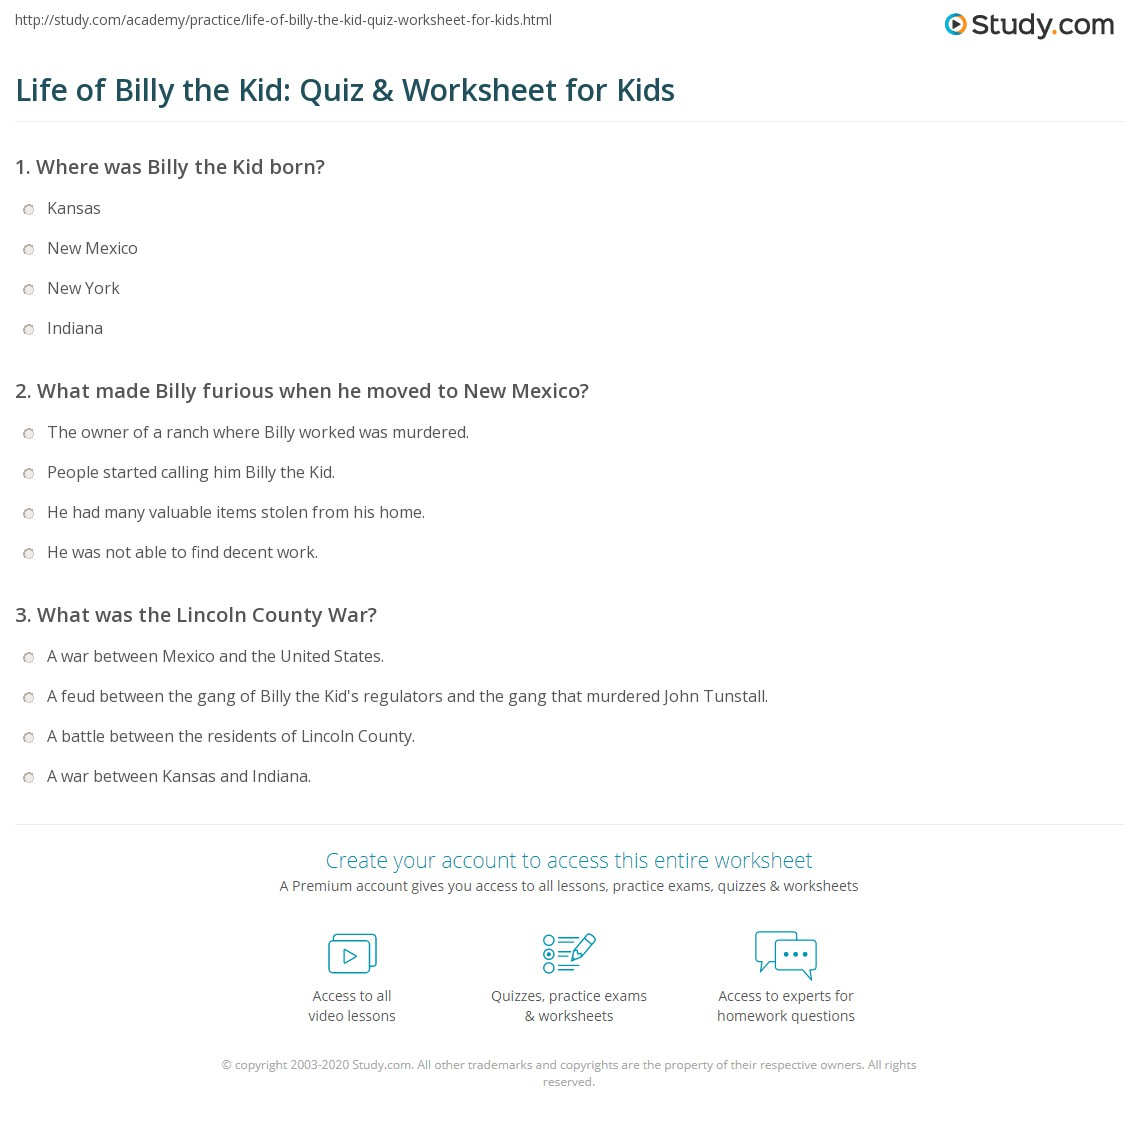 Life of Billy the Kid: Quiz & Worksheet for Kids | Study com